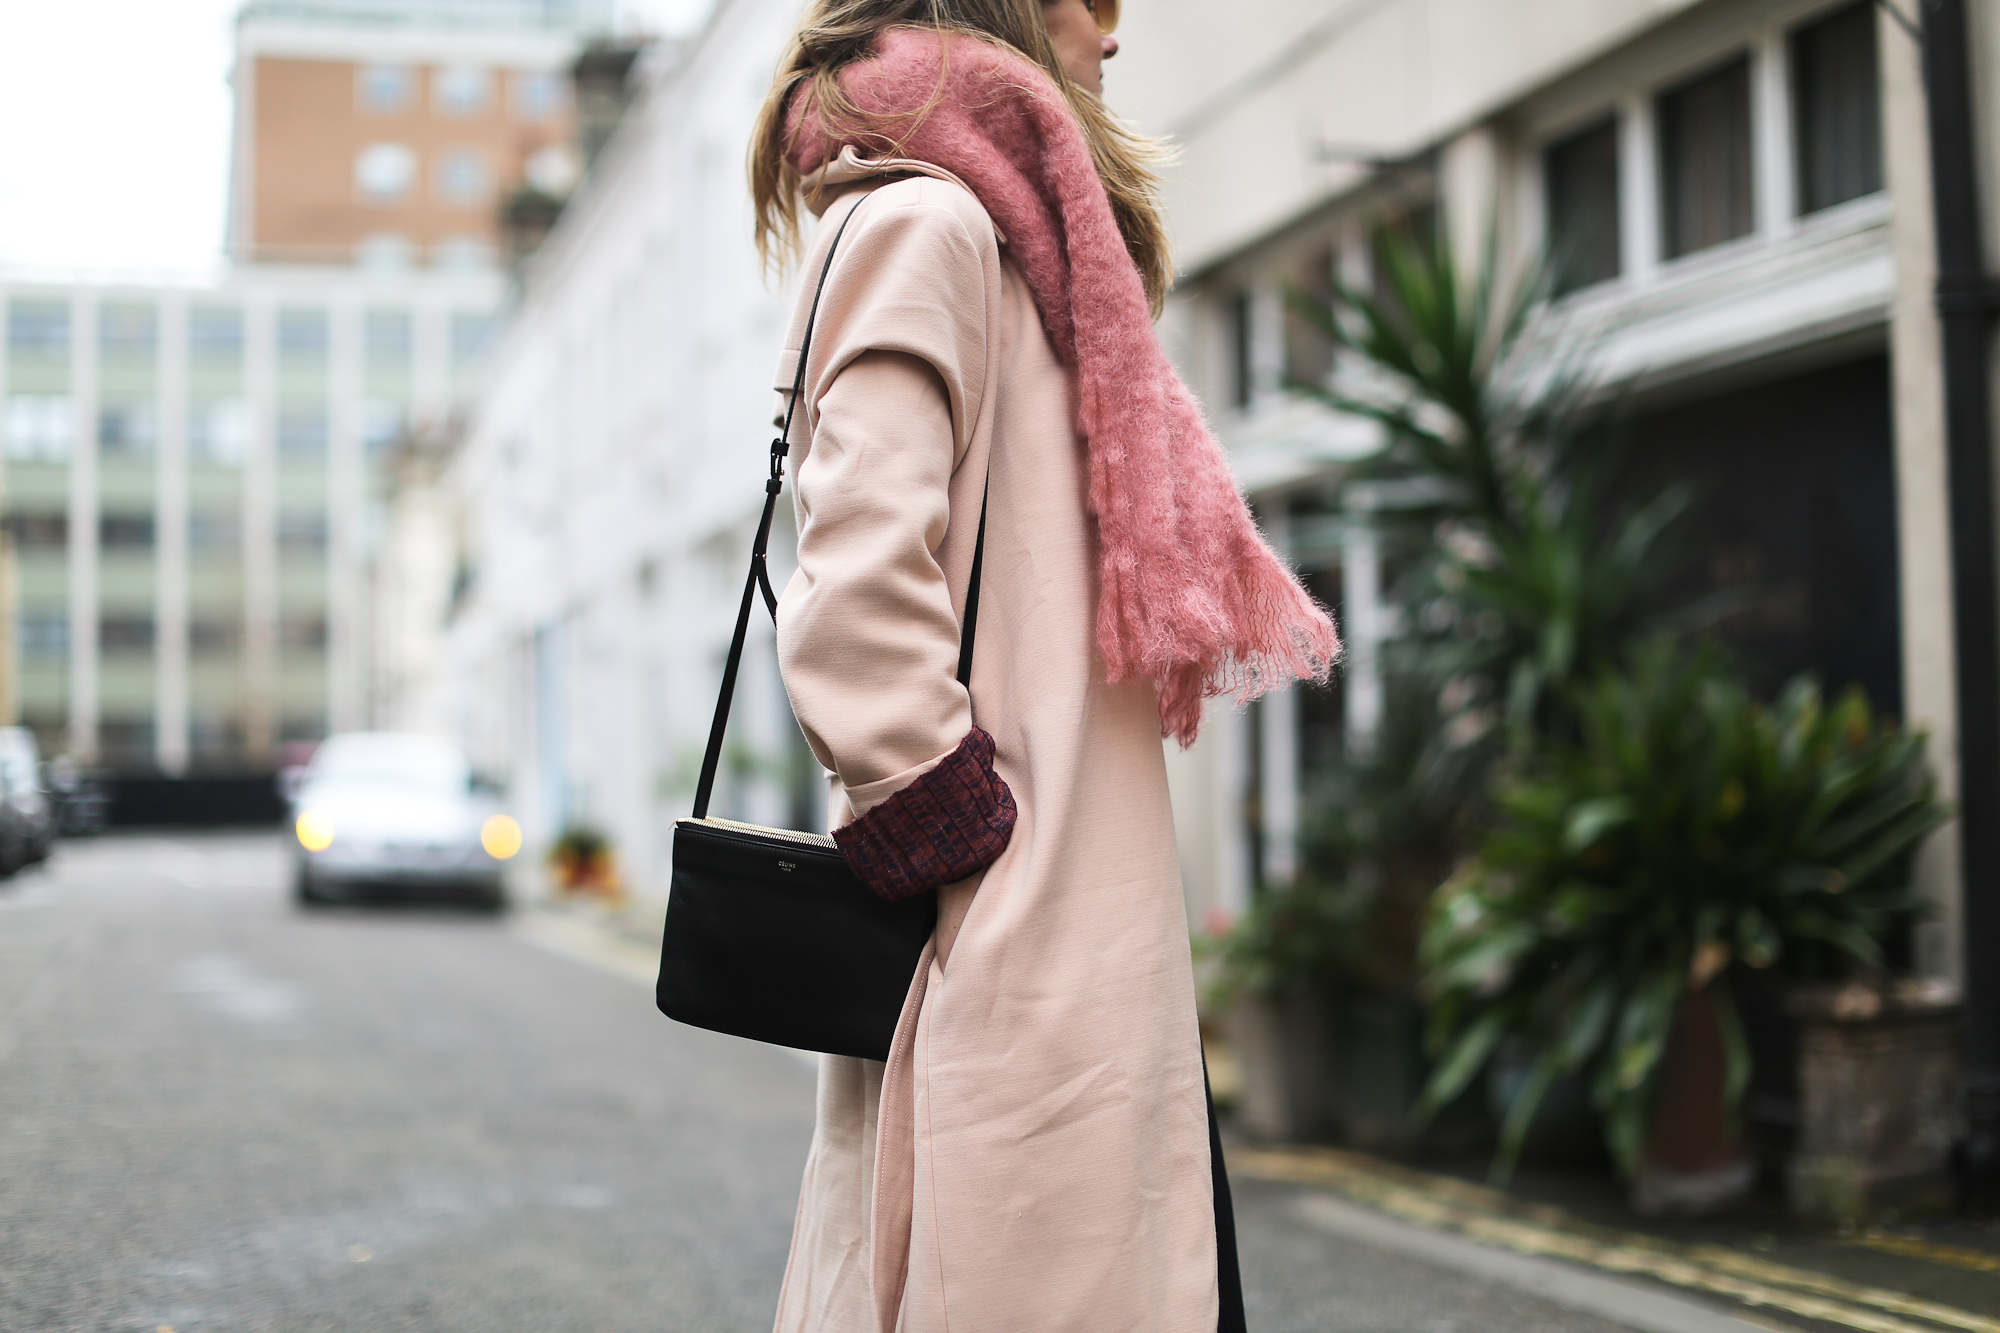 Clochet_streetstyle_blanco_nude_trench_goldengoose_superstar_sneakers_london_celinetriobag-8